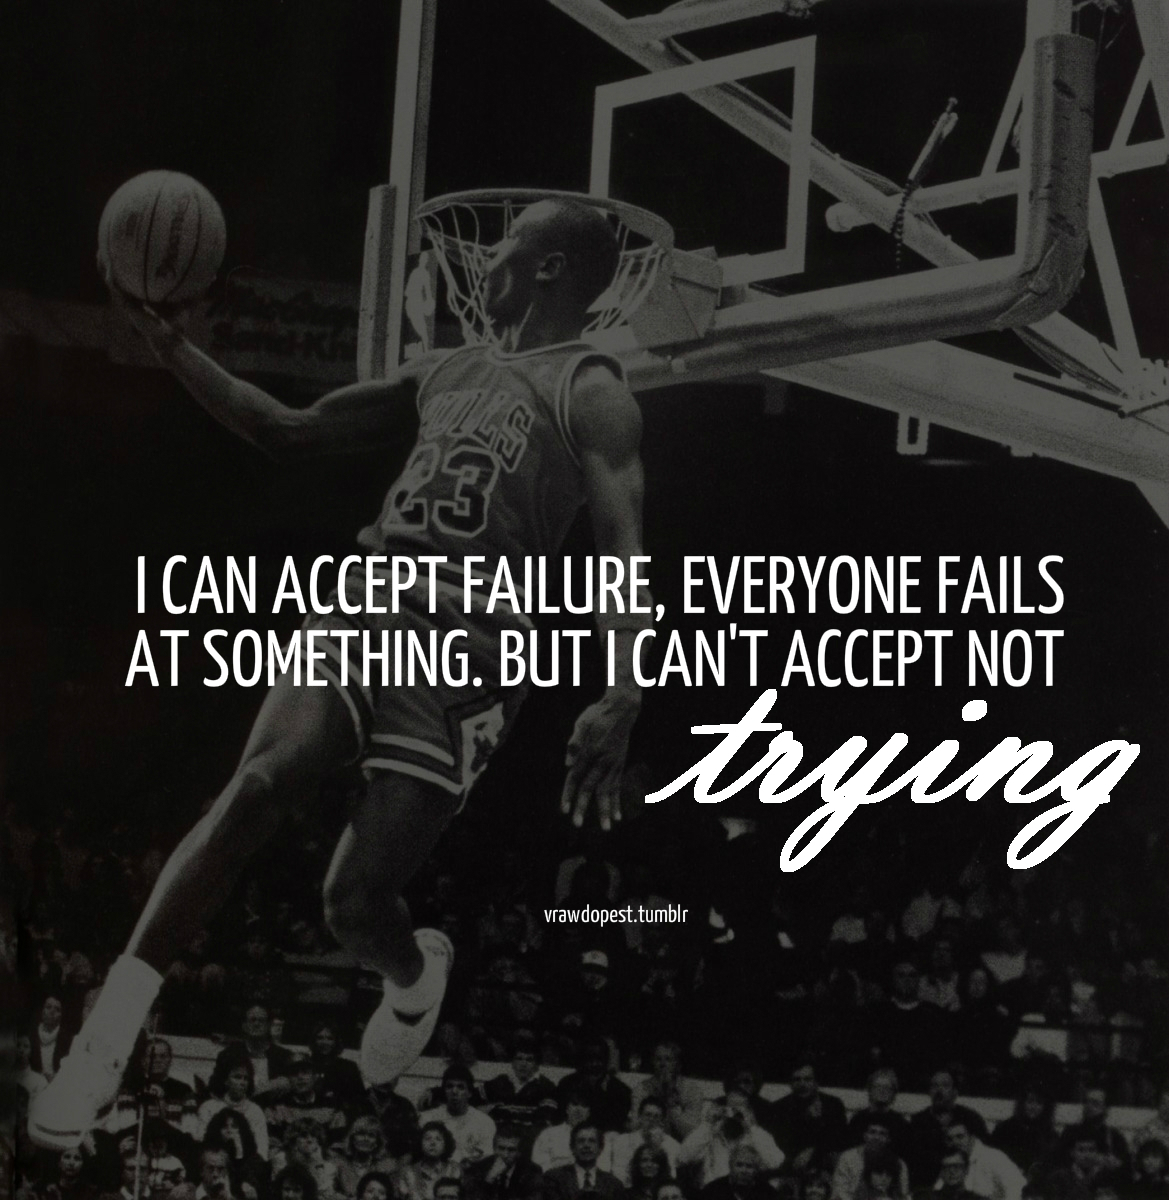 Quotes About Work: Michael Jordan Quotes About Hard Work. QuotesGram